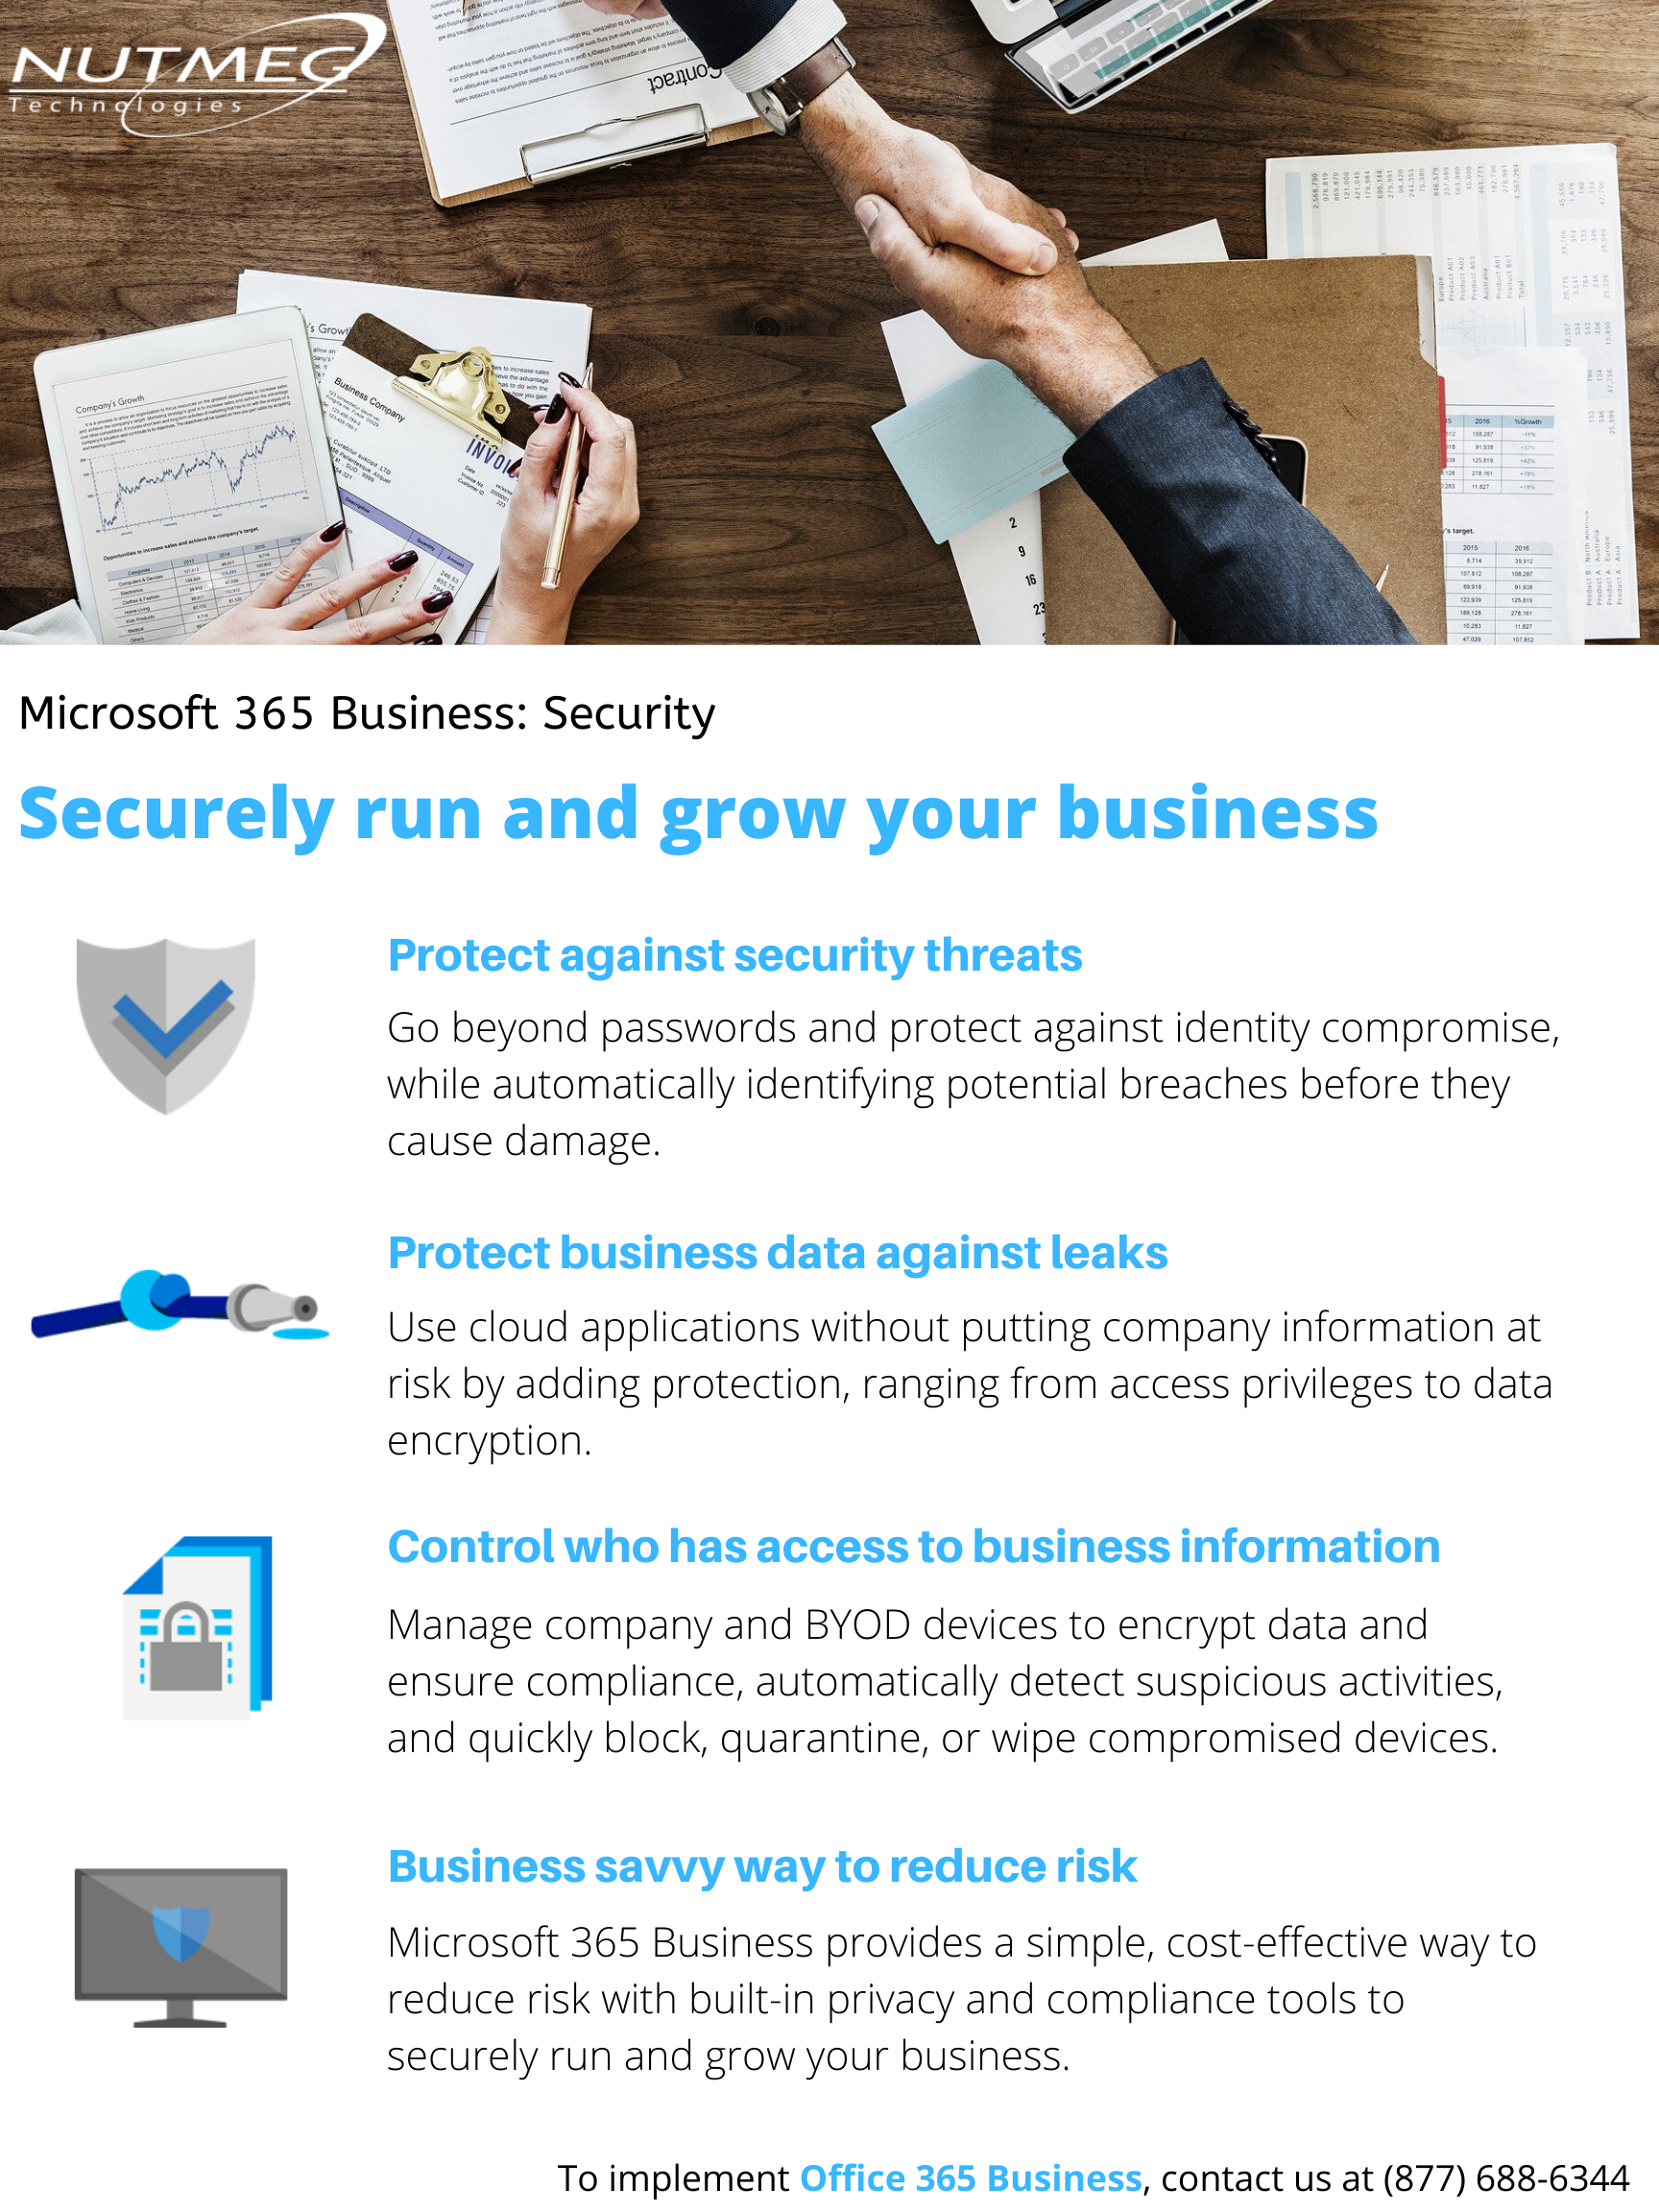 Securely run and grow your business with Microsoft 365 Business